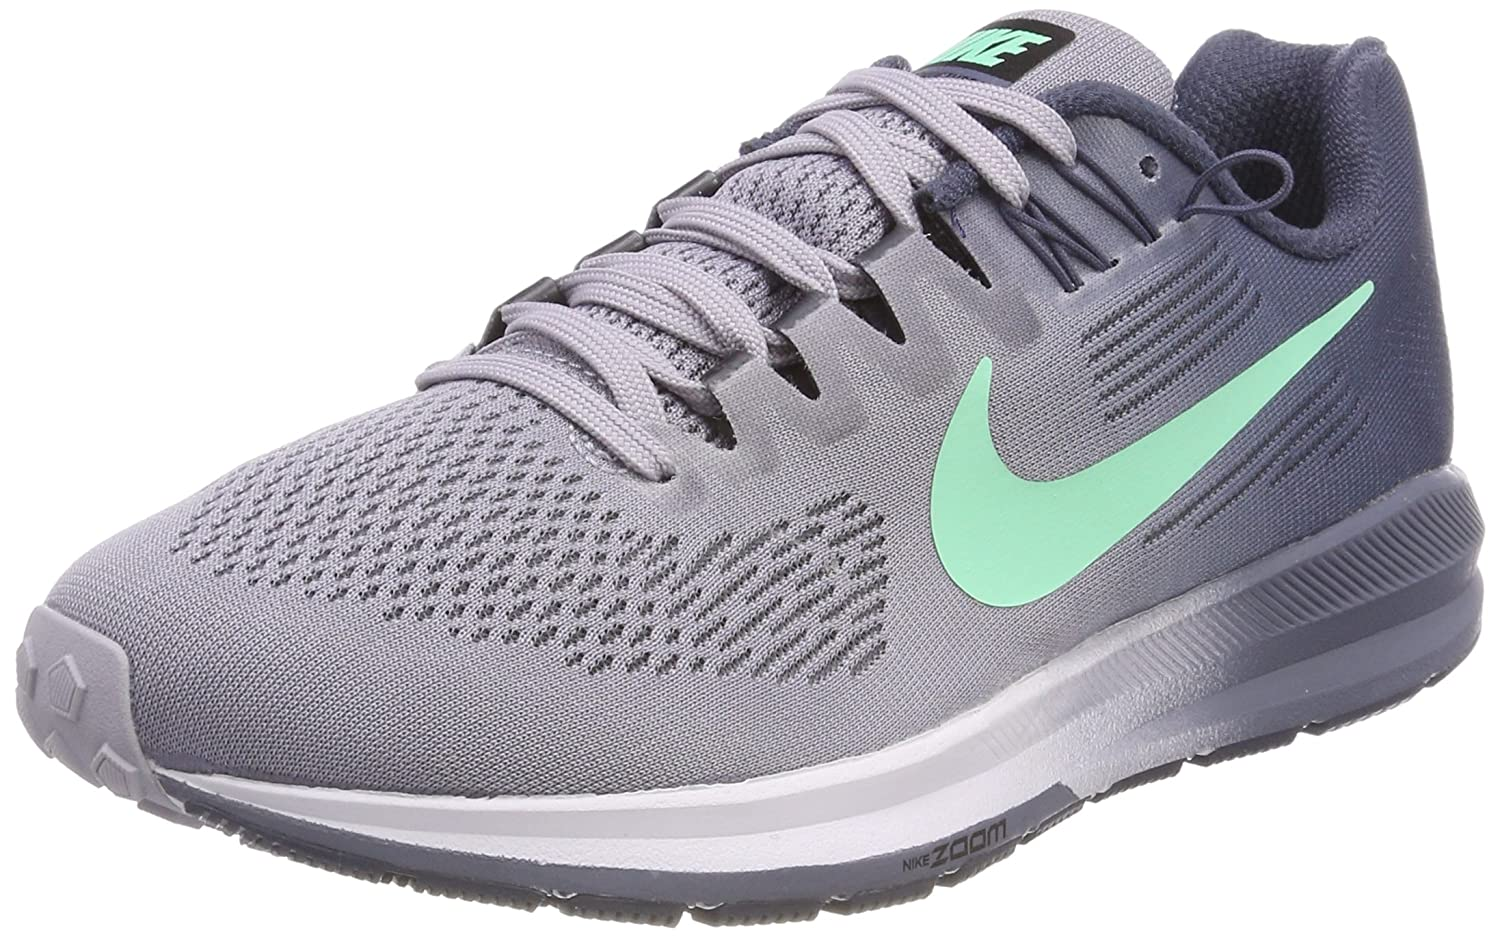 NIKE Women's Air Zoom Structure 21 Running Shoe B0793JHPNX 5.5 B(M) US|Provence Purple/Green Glow